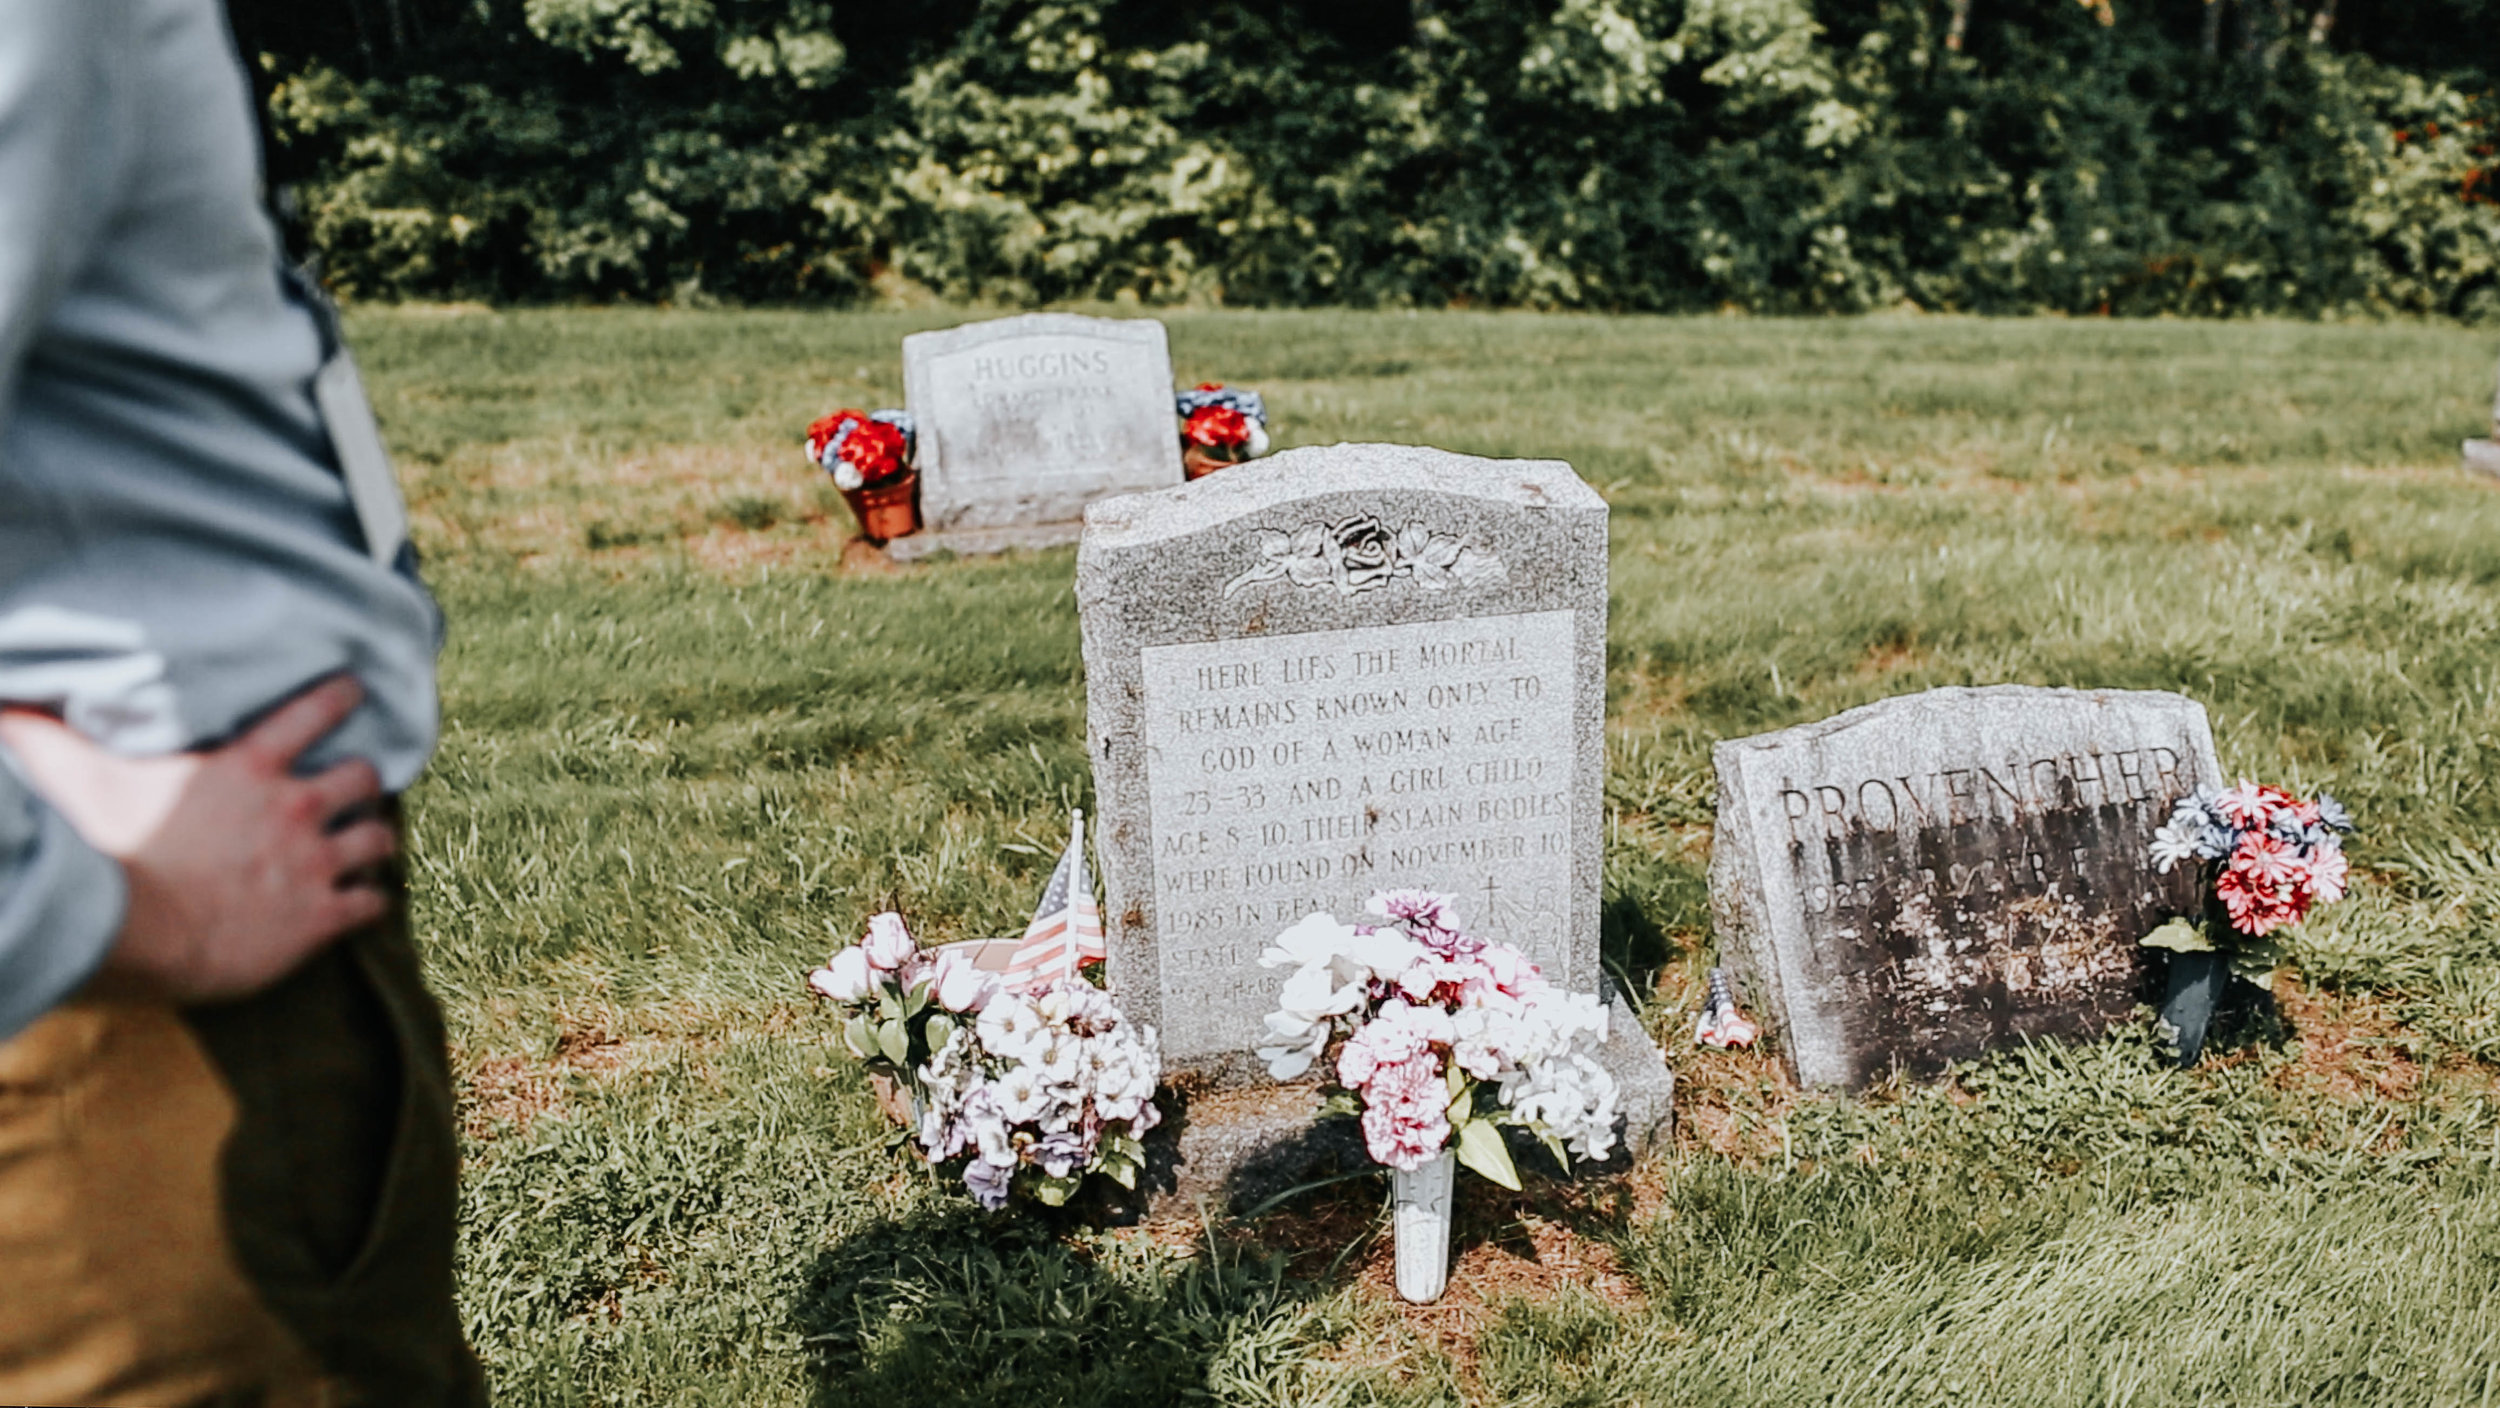 The headstone placed on the grave where the first set of remains were buried.